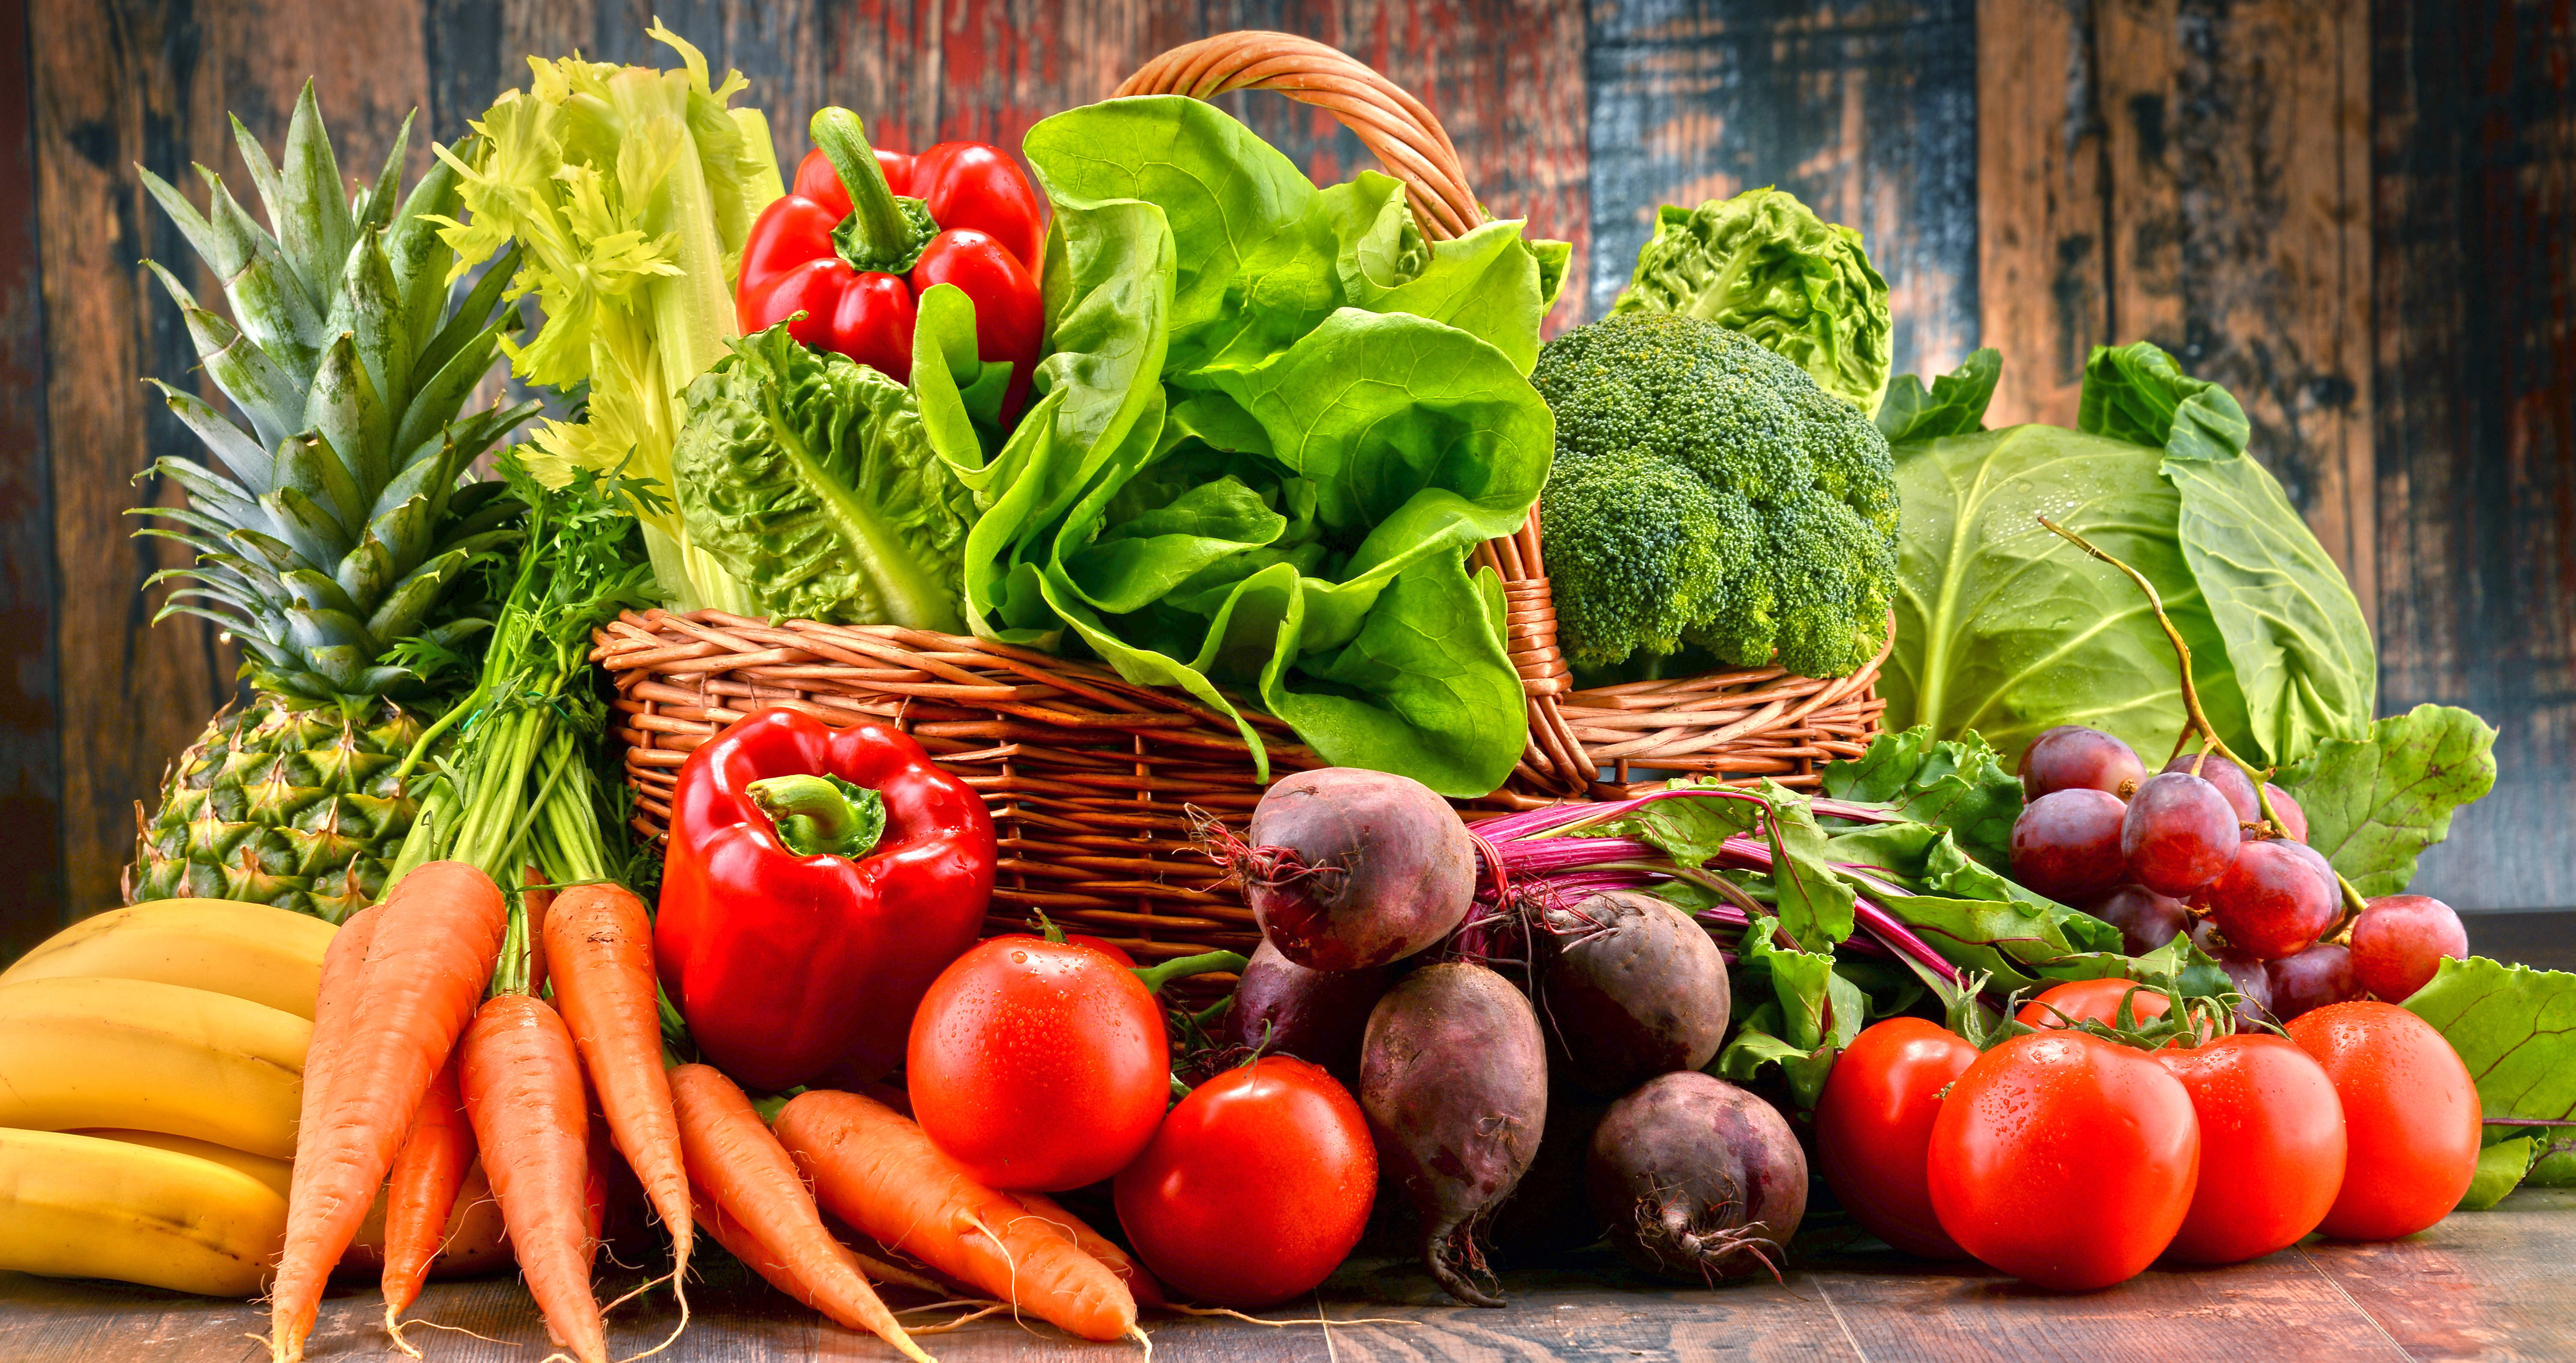 Effort by Assemblyman Wimberly to Bring Healthy Food to Urban Communities Signed Into Law